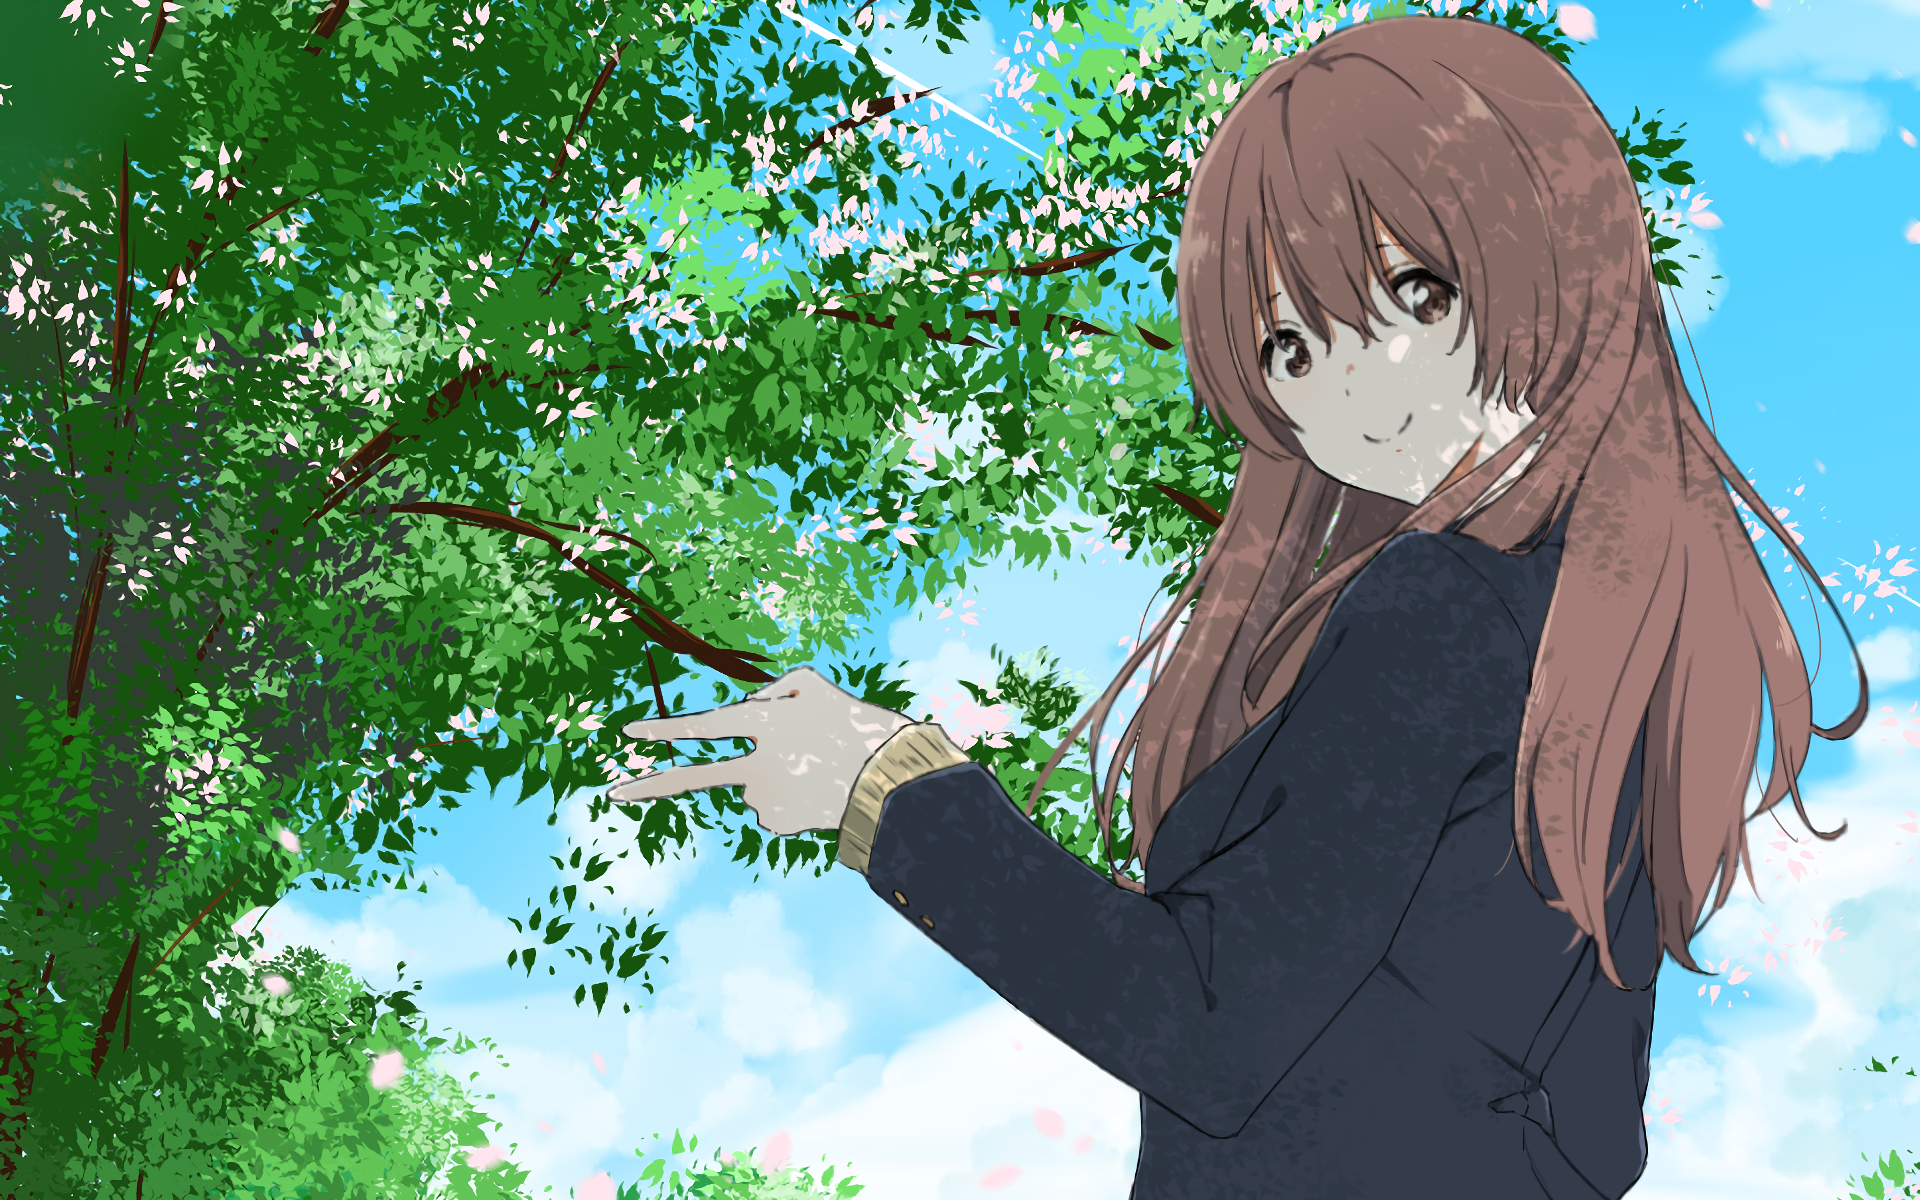 312 Koe No Katachi Hd Wallpapers Background Images Wallpaper